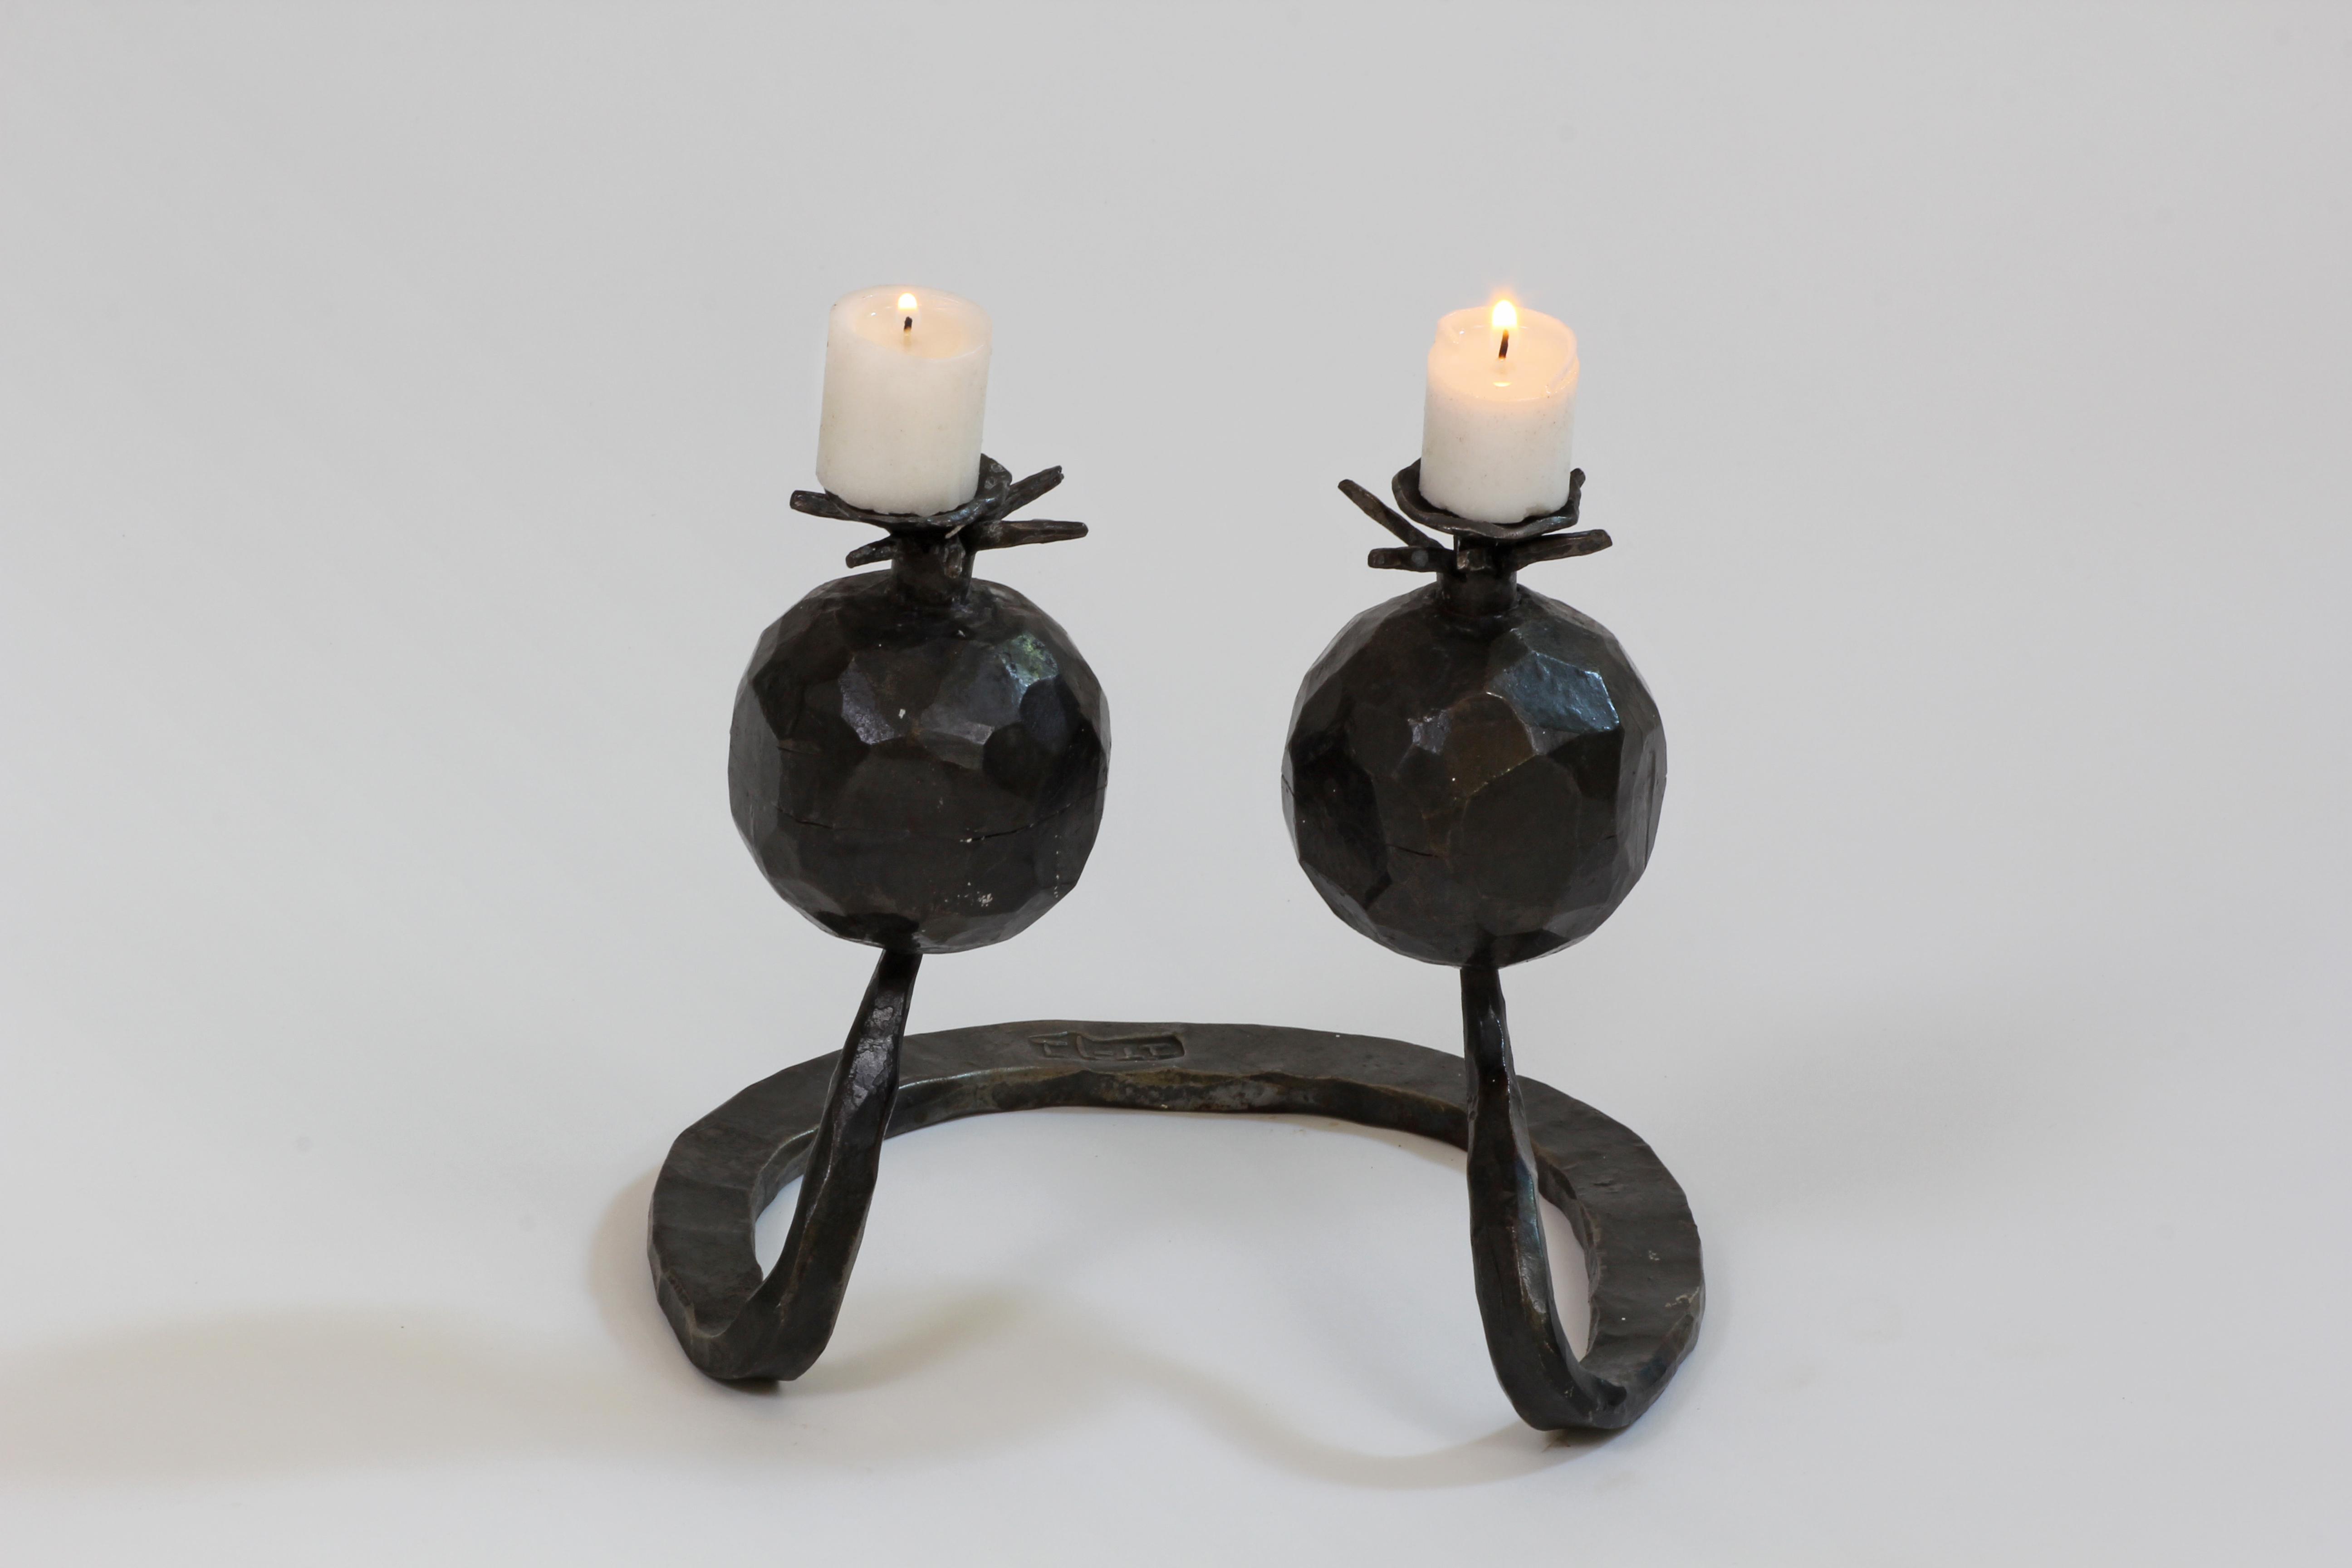 Pomegranate Candle Holder in Iron